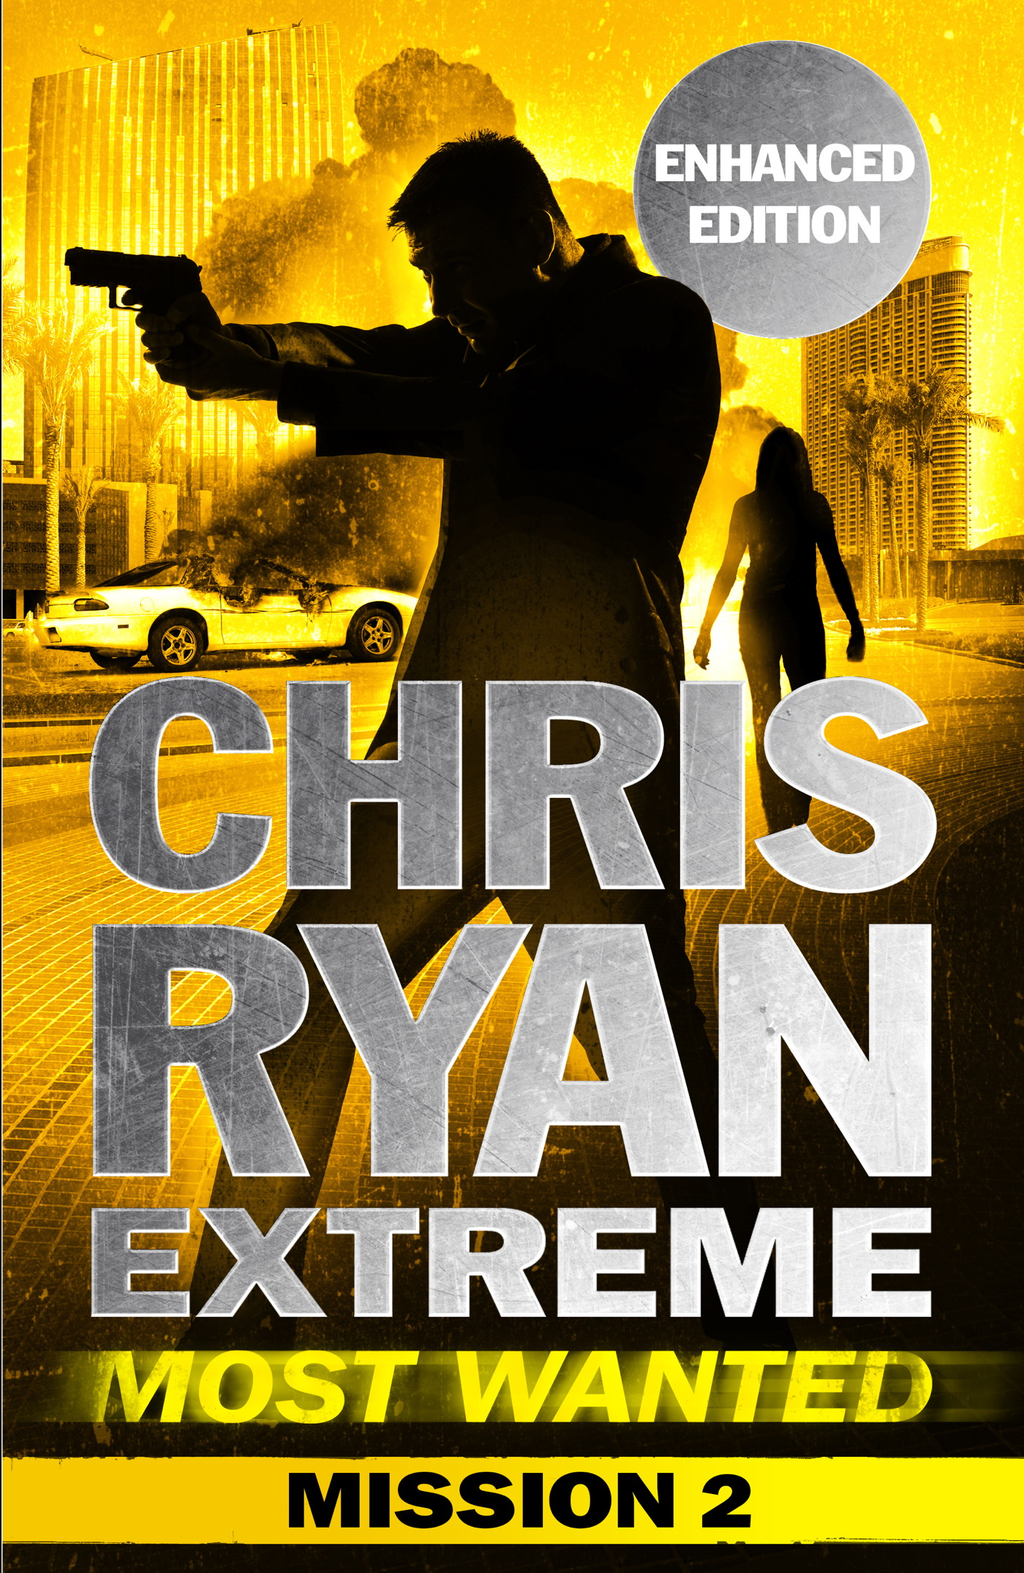 Most Wanted Mission 2 (Enhanced Edition) Chris Ryan Extreme: Series 3